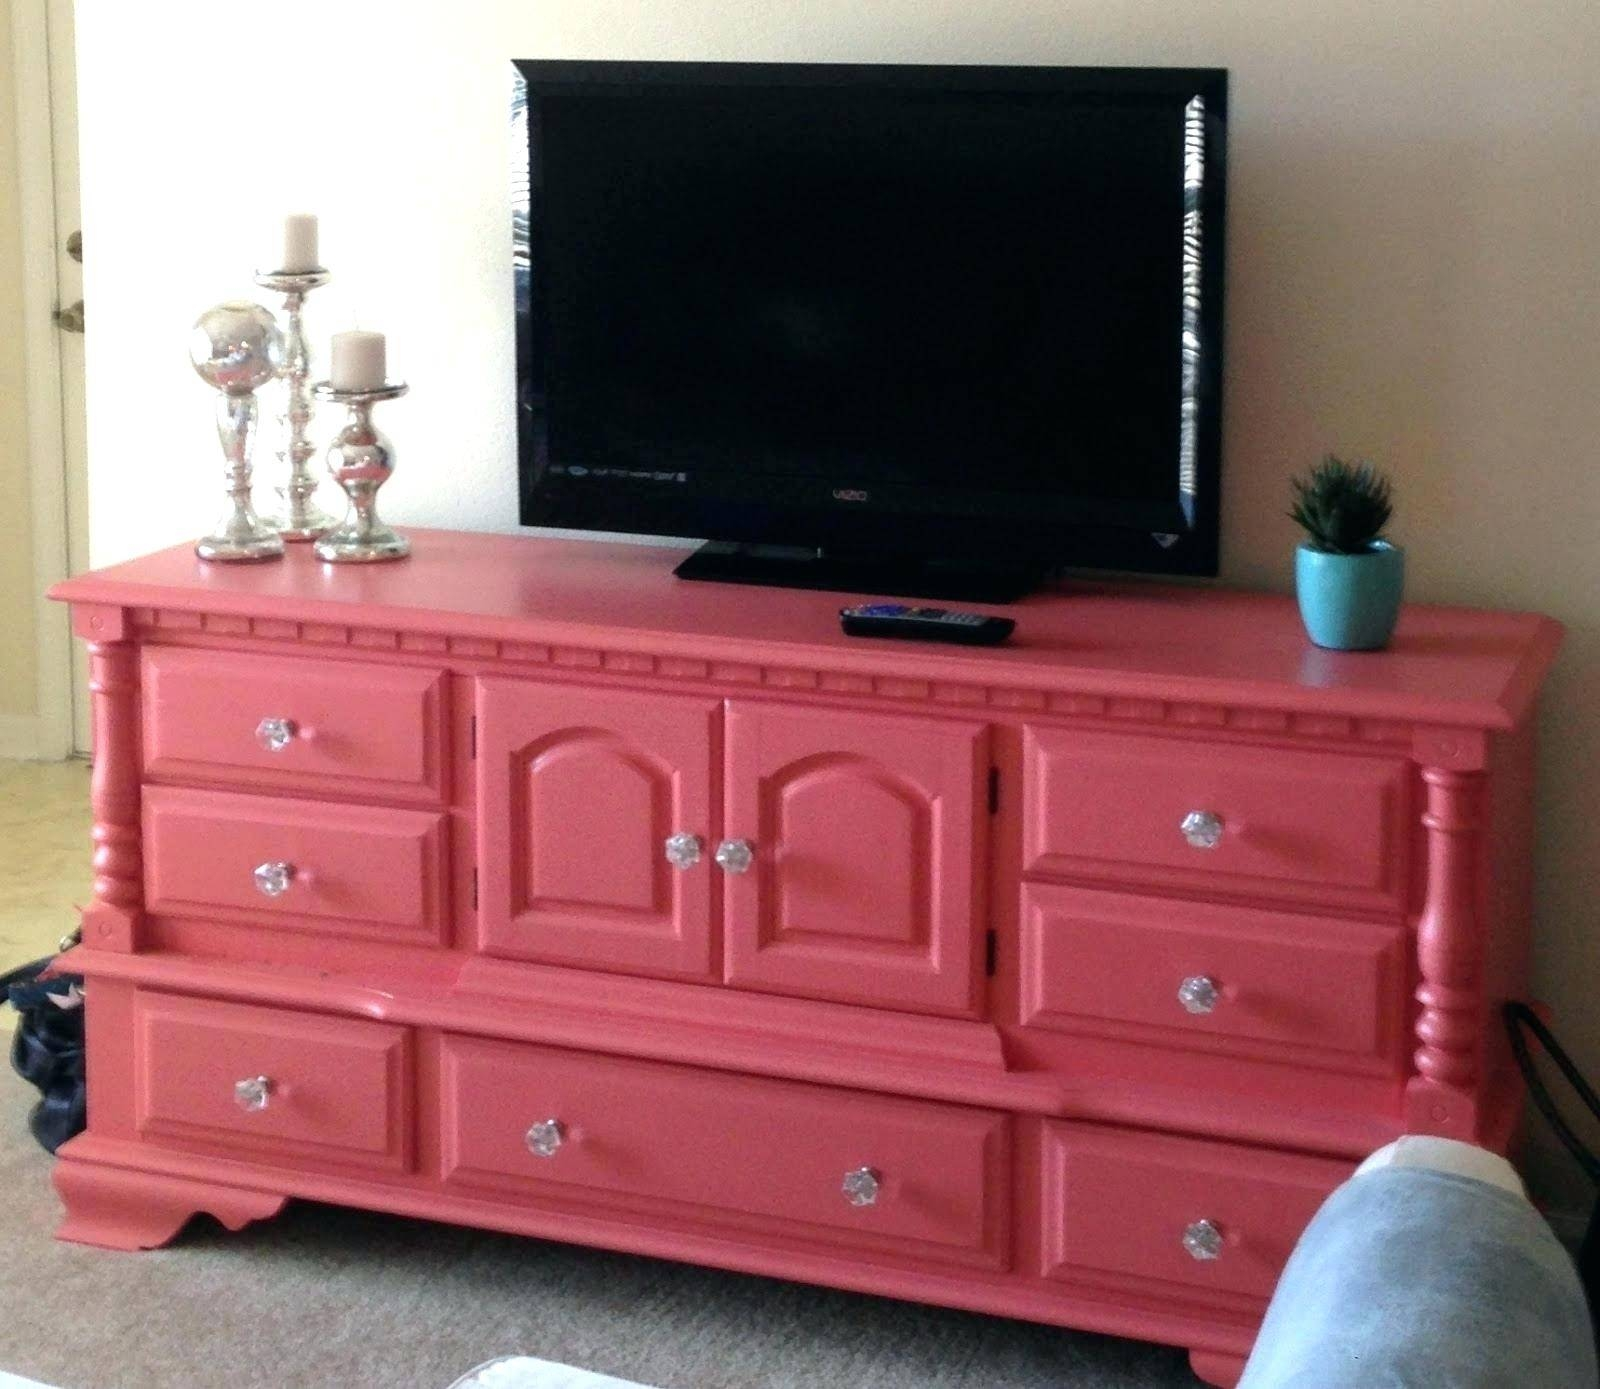 Tv Stand: Fascinating Rustic Red Tv Stand For Living Room. Tv for Red Tv Stands (Image 12 of 15)